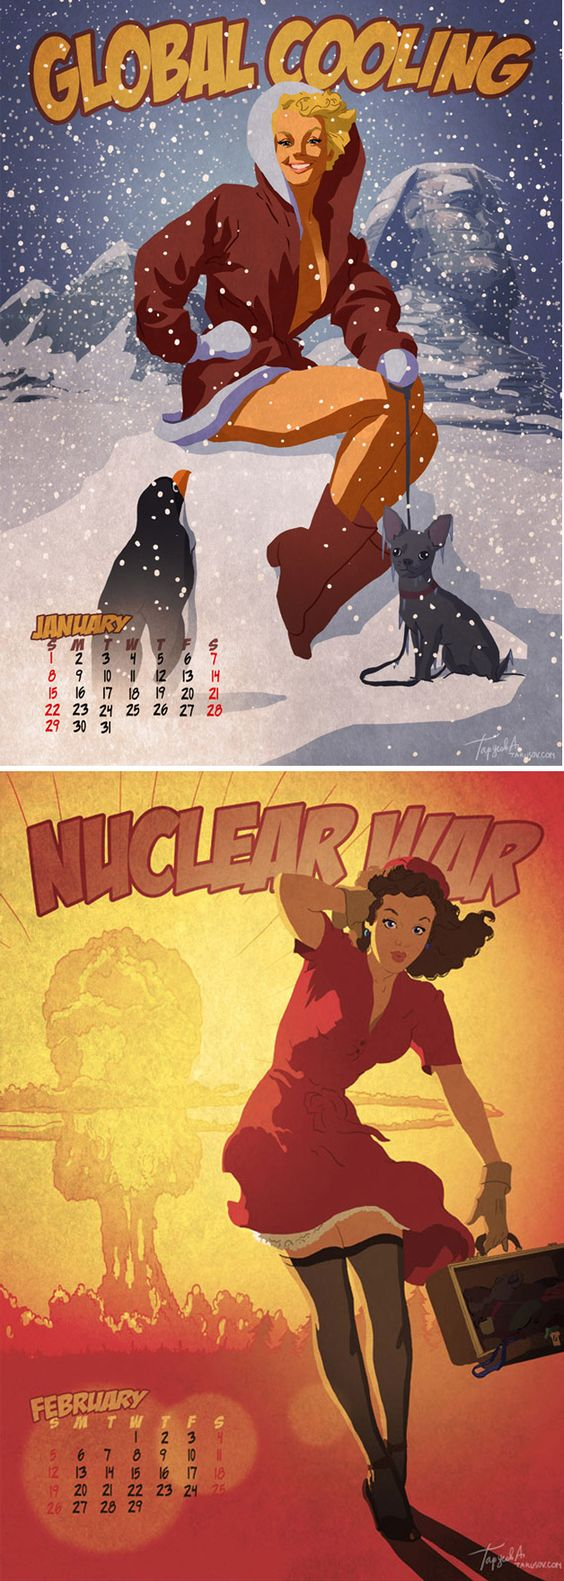 pin ups announces the end of the world as we know it....